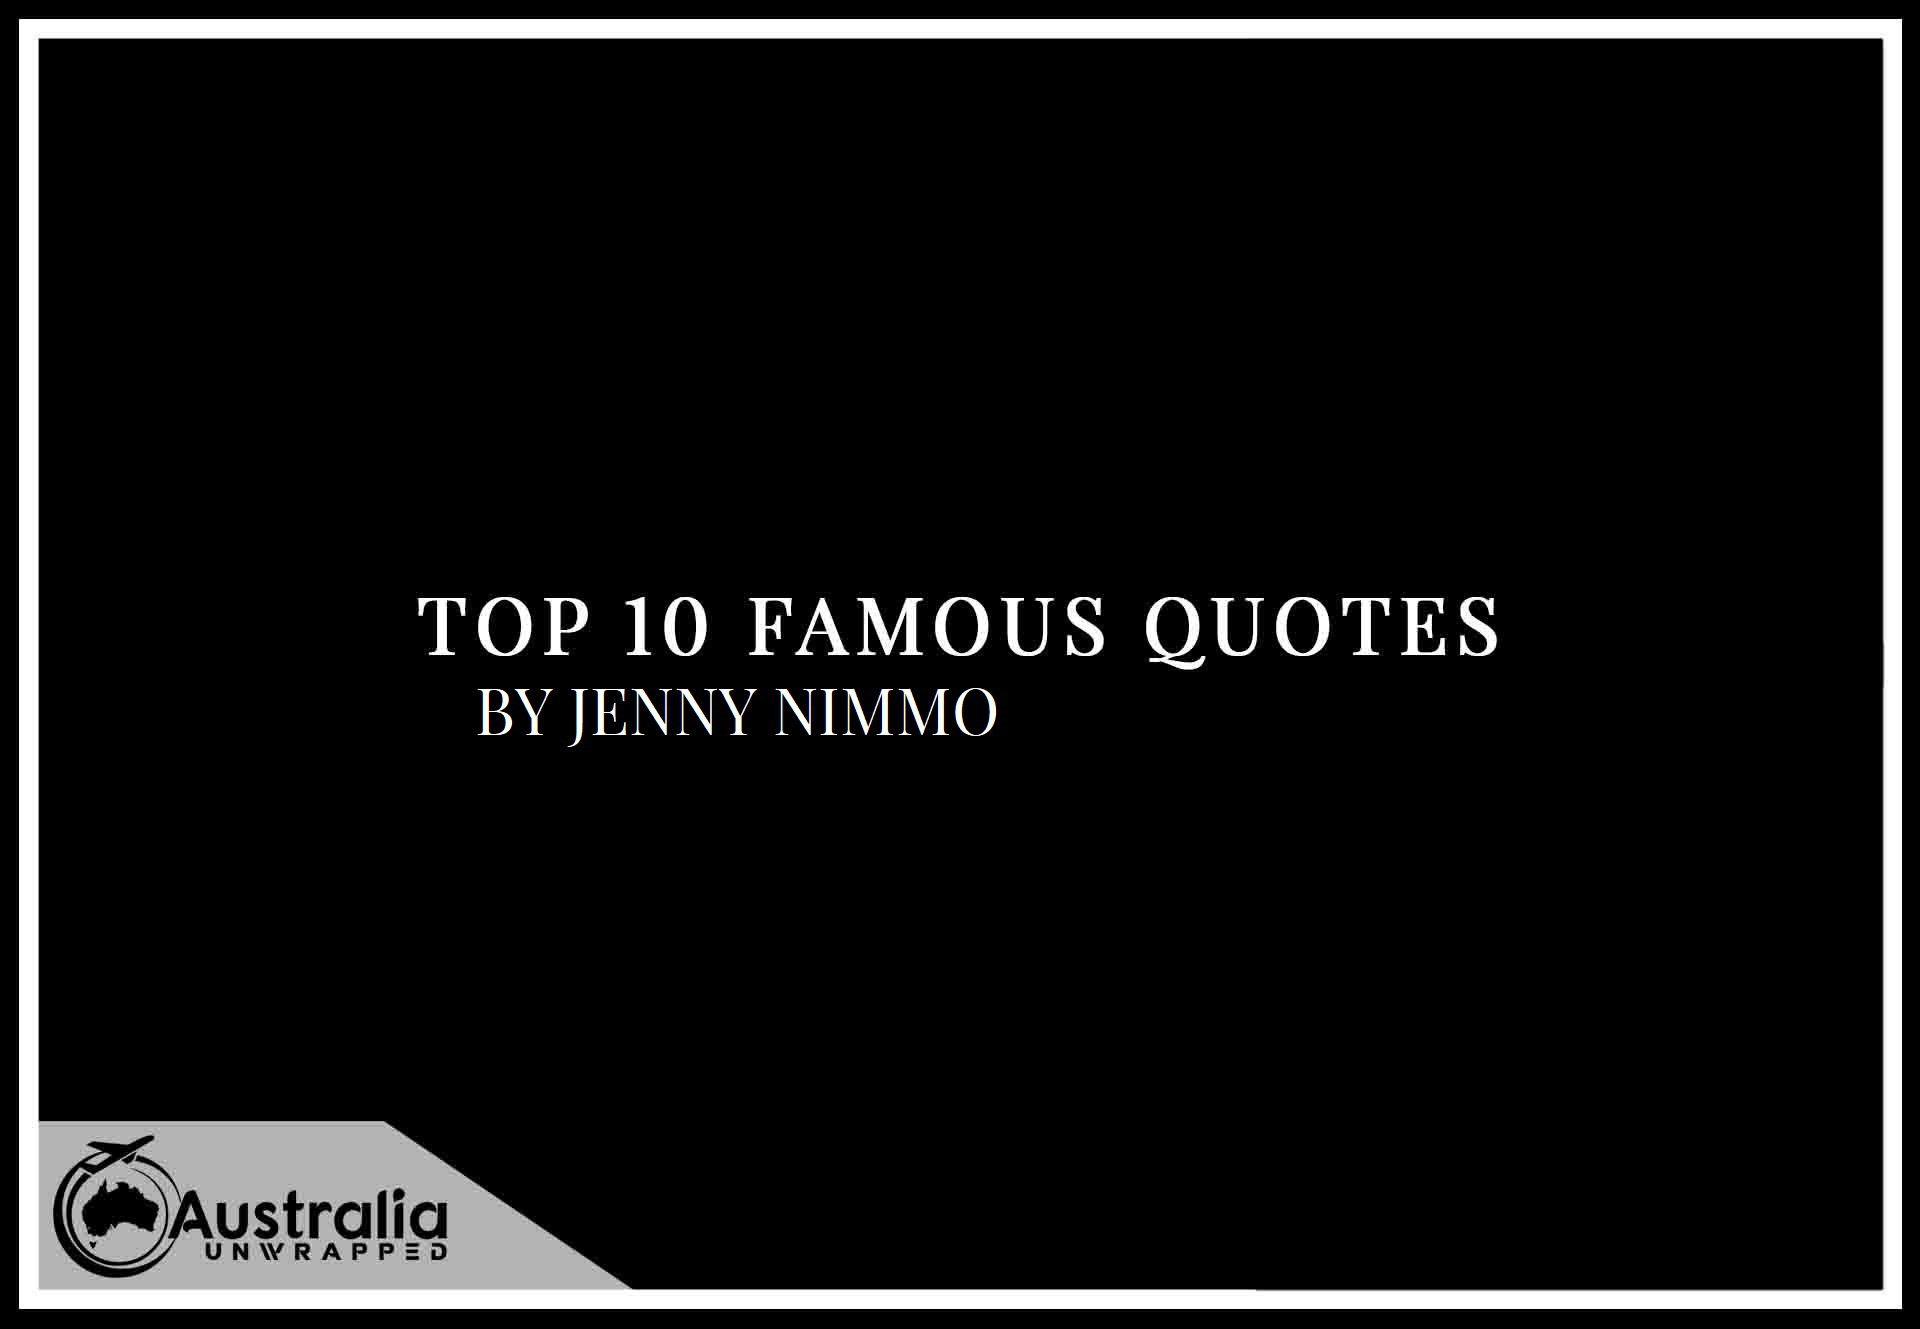 Top 10 Famous Quotes by Author Jenny Nimmo